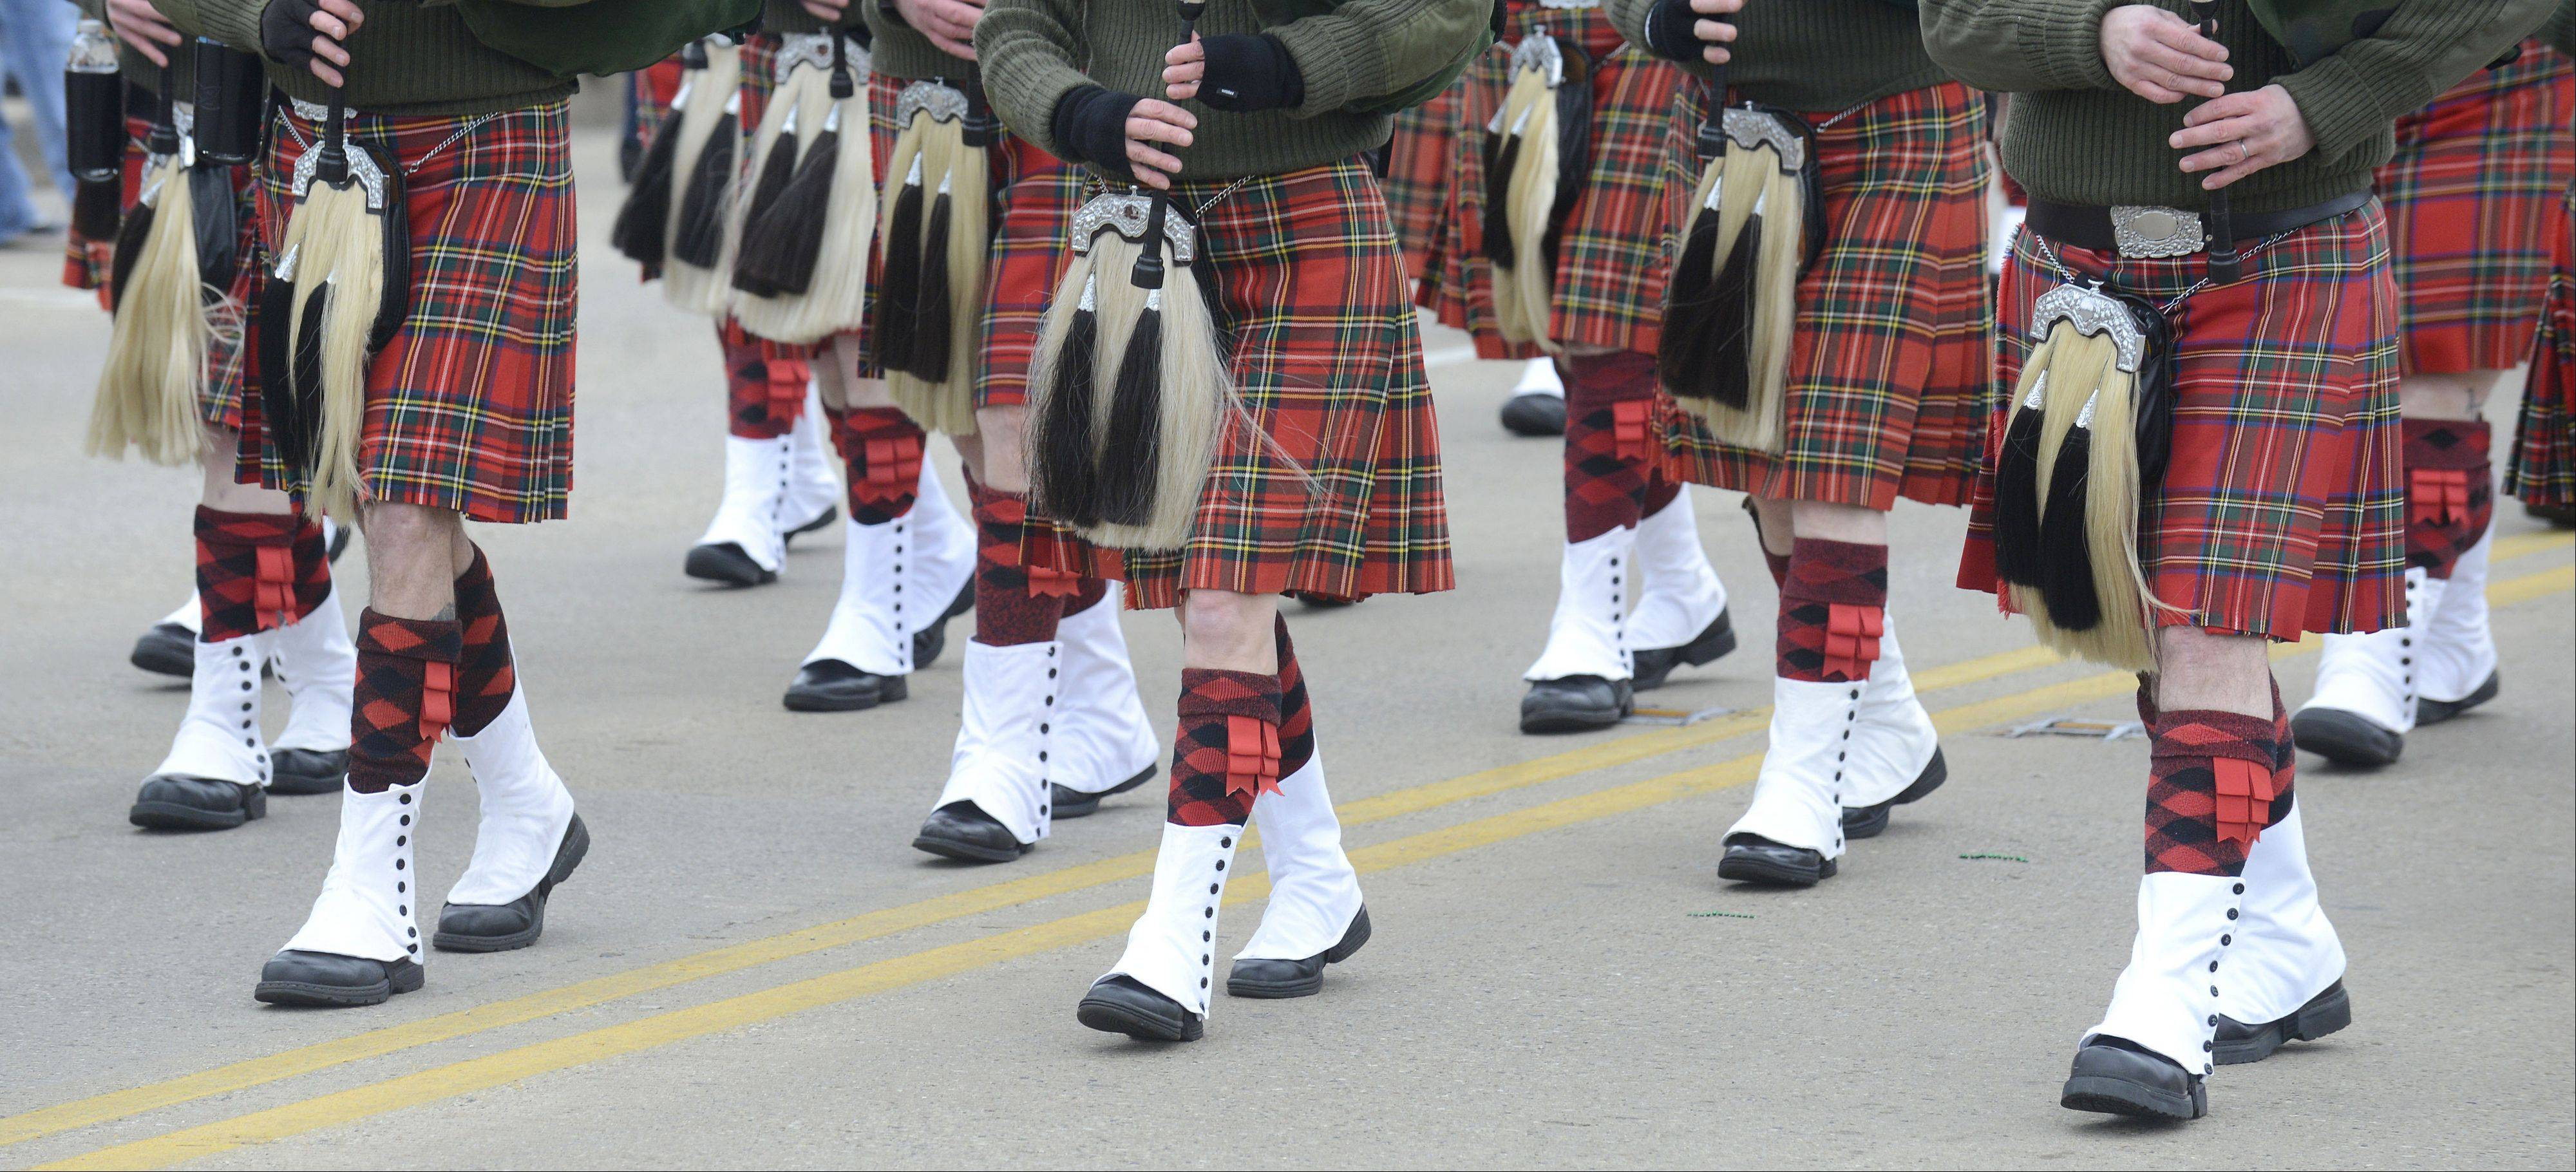 The Chicago Highlanders Pipes and Drums marches down Main Street in the St. Patrick's Day parade in St. Charles Saturday.